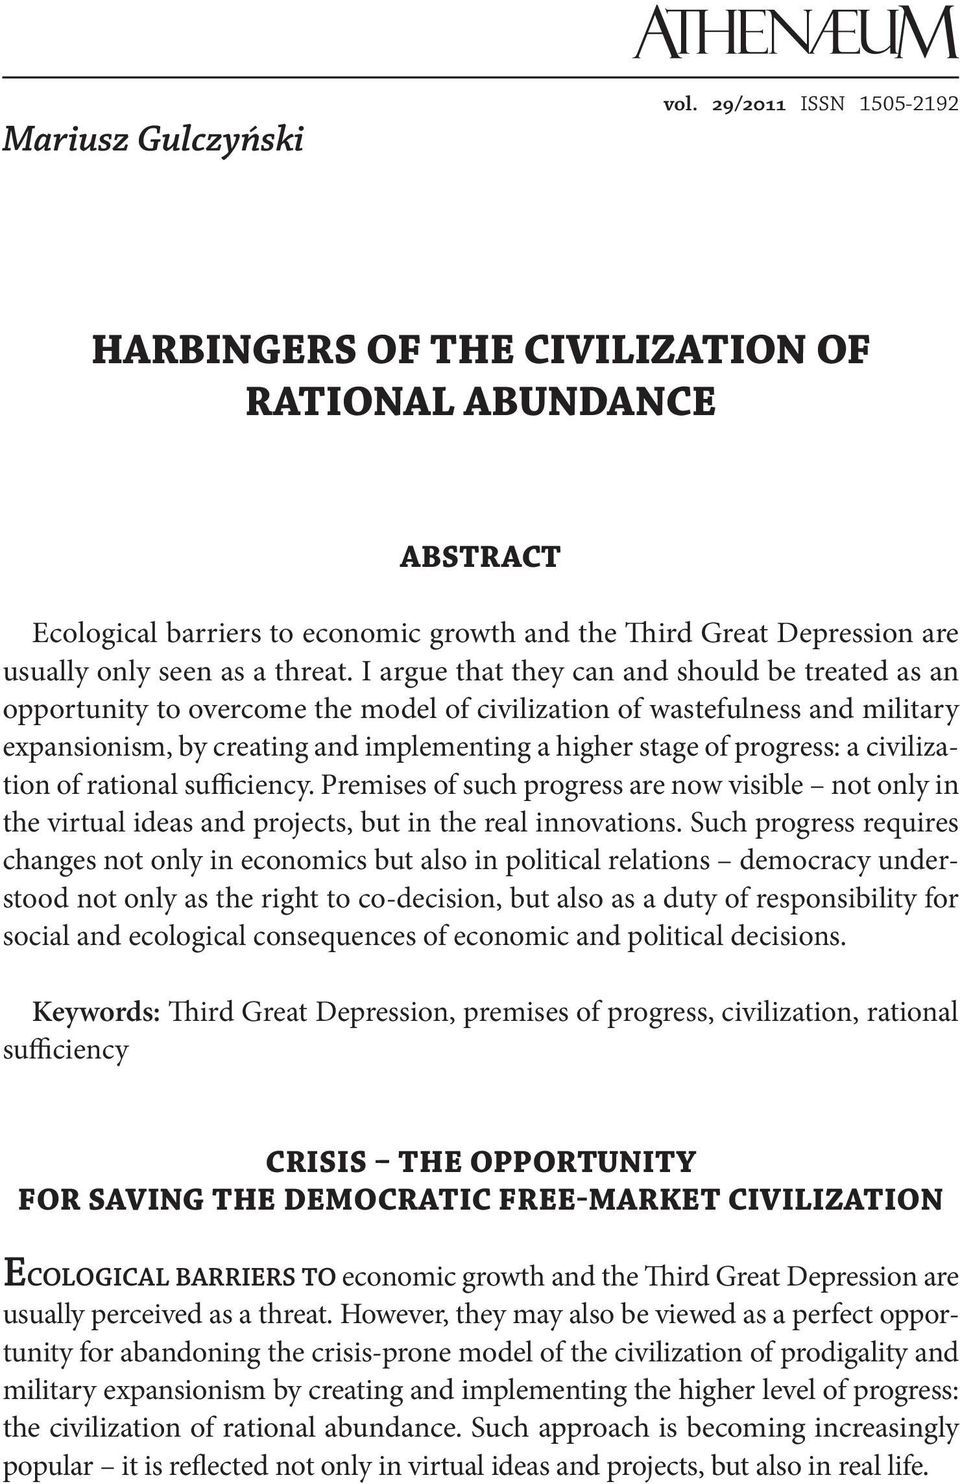 I argue that they can and should be treated as an opportunity to overcome the model of civilization of wastefulness and military expansionism, by creating and implementing a higher stage of progress: